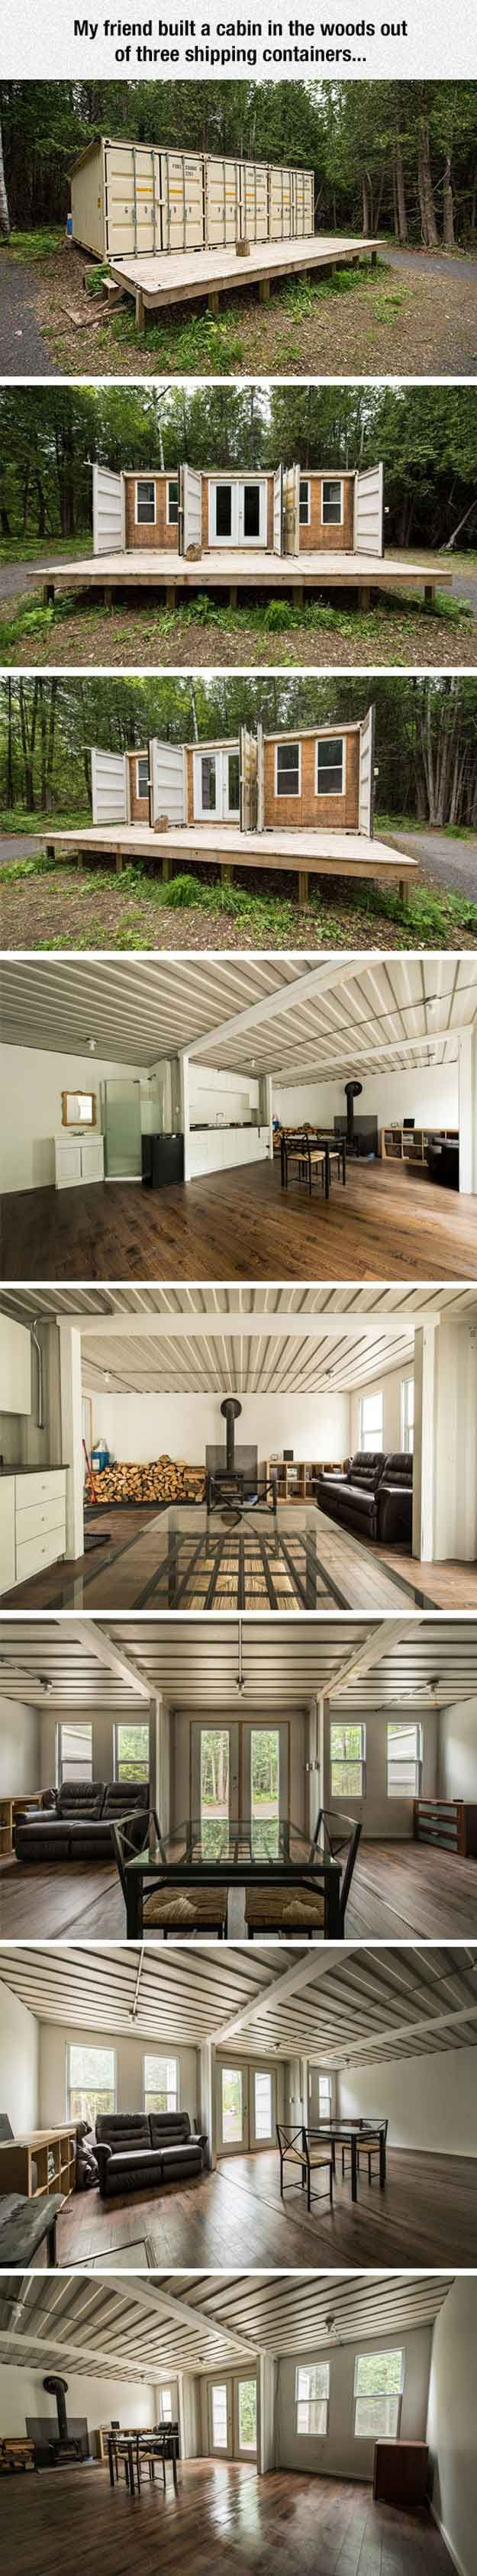 17 cool container homes to inspire your own | container cabin, diy